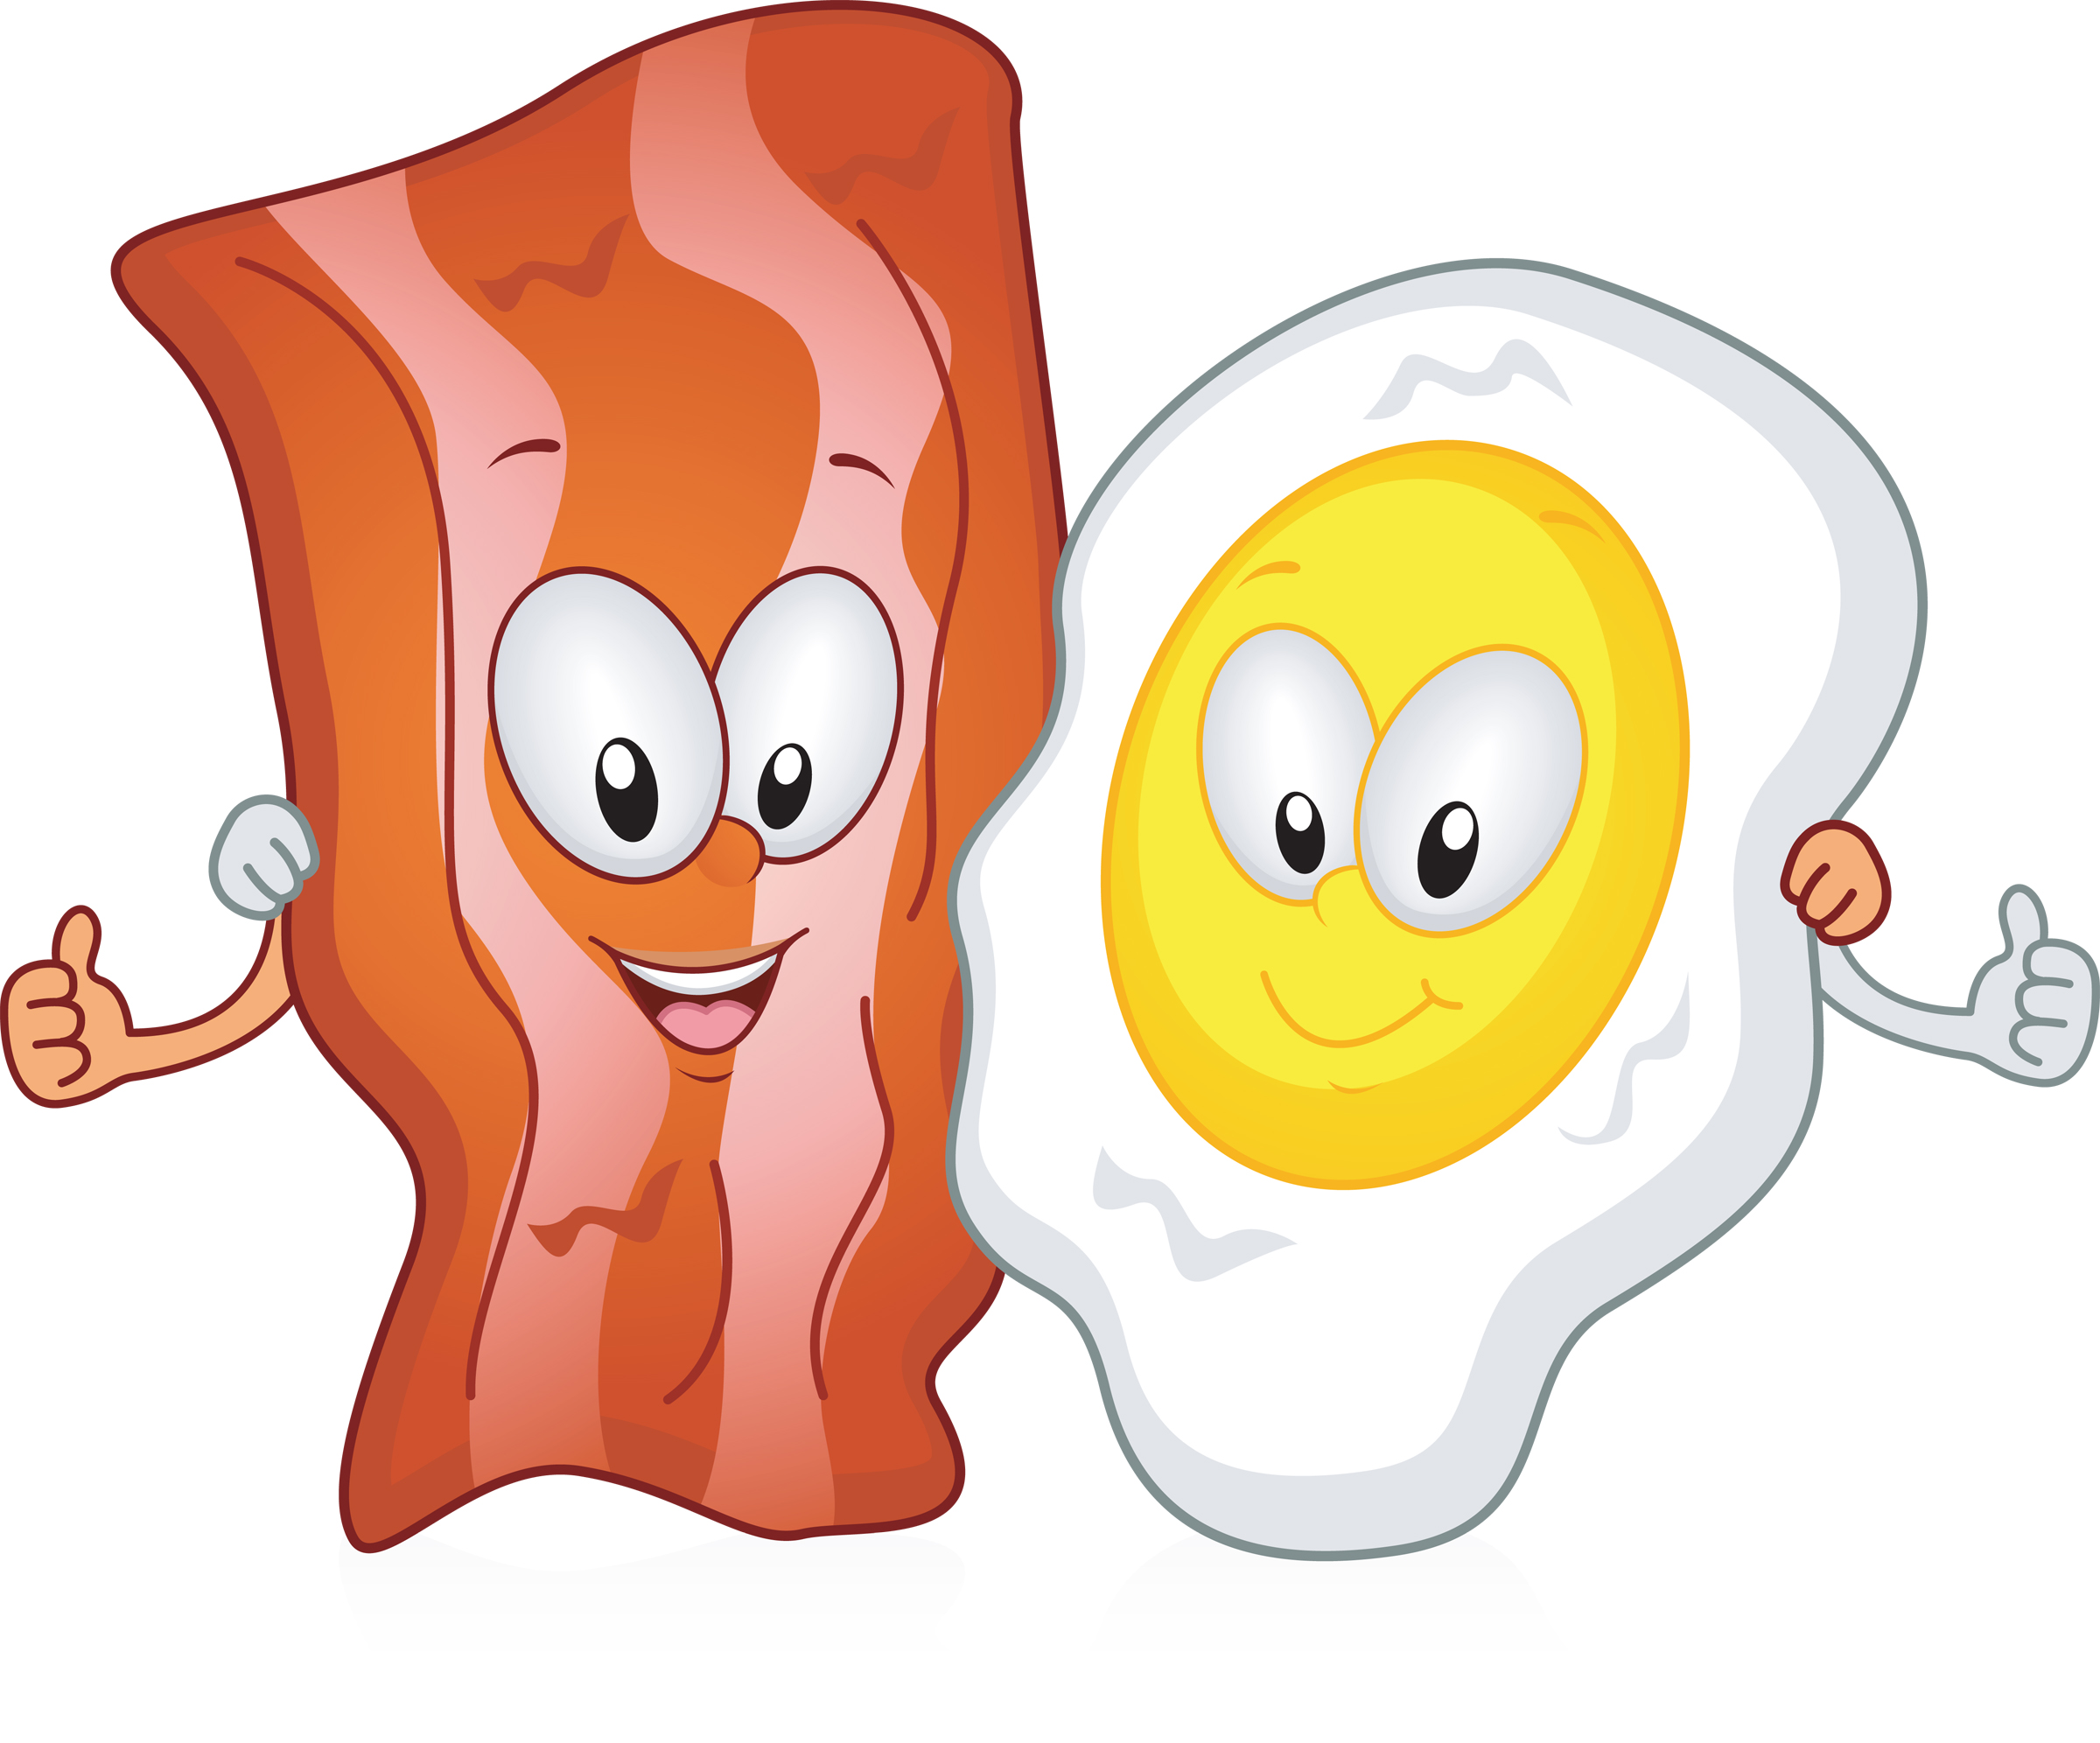 Bacon clipart egg roll. Nutrition and eggs